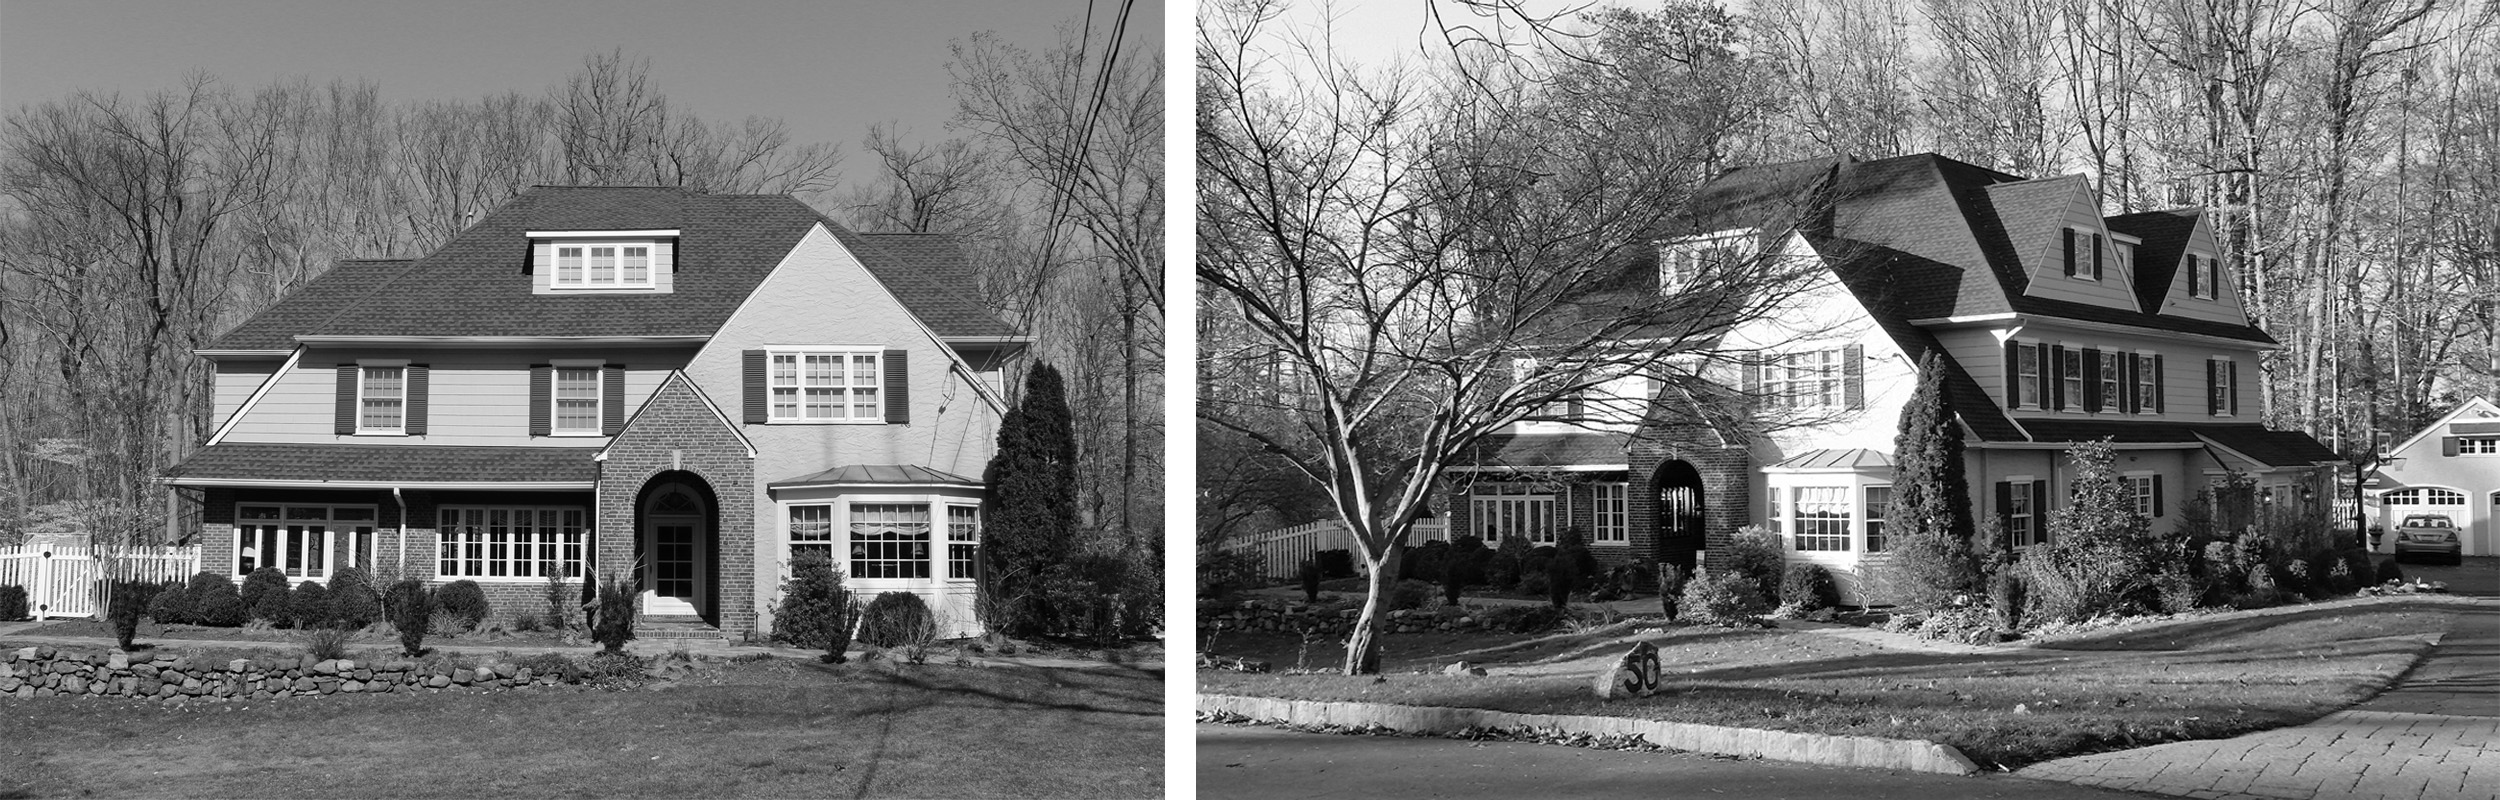 Before: Front of house and front elevation.